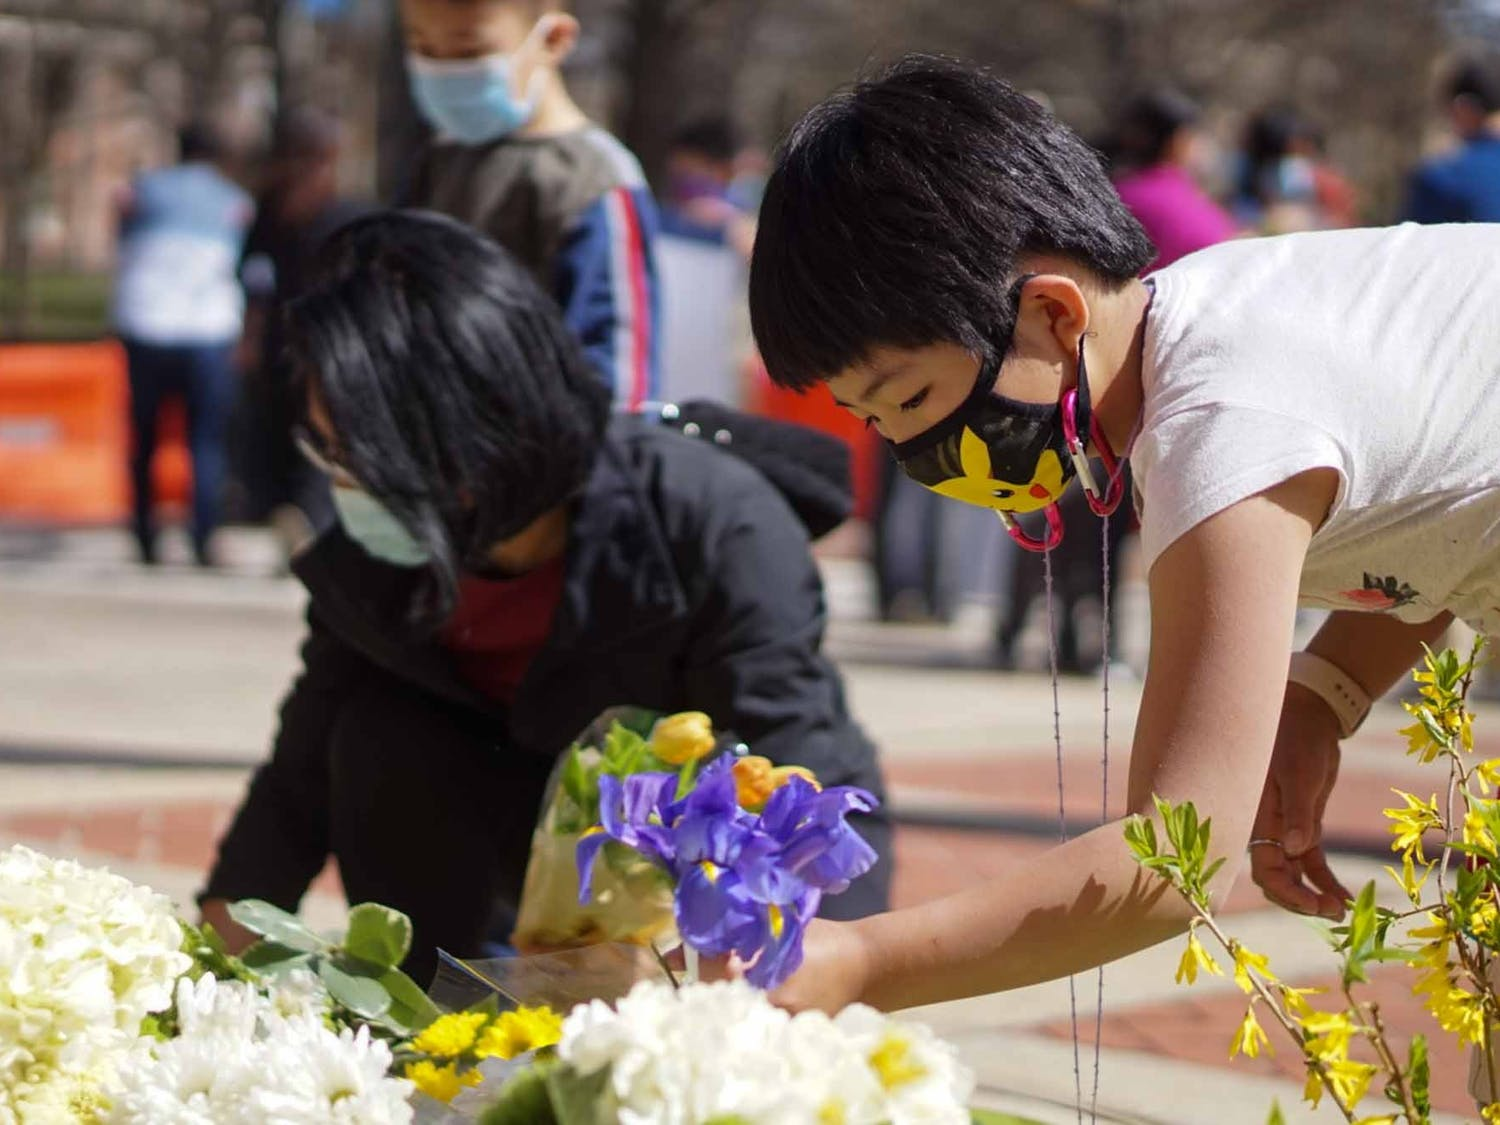 The Chinese American Friendship Association and North Carolina Asian Americans Together held a gathering of solidarity to honor and remember the victims of the Atlanta shootings outside of the Peace and Justice Plaza on Sunday, March 21, 2021.